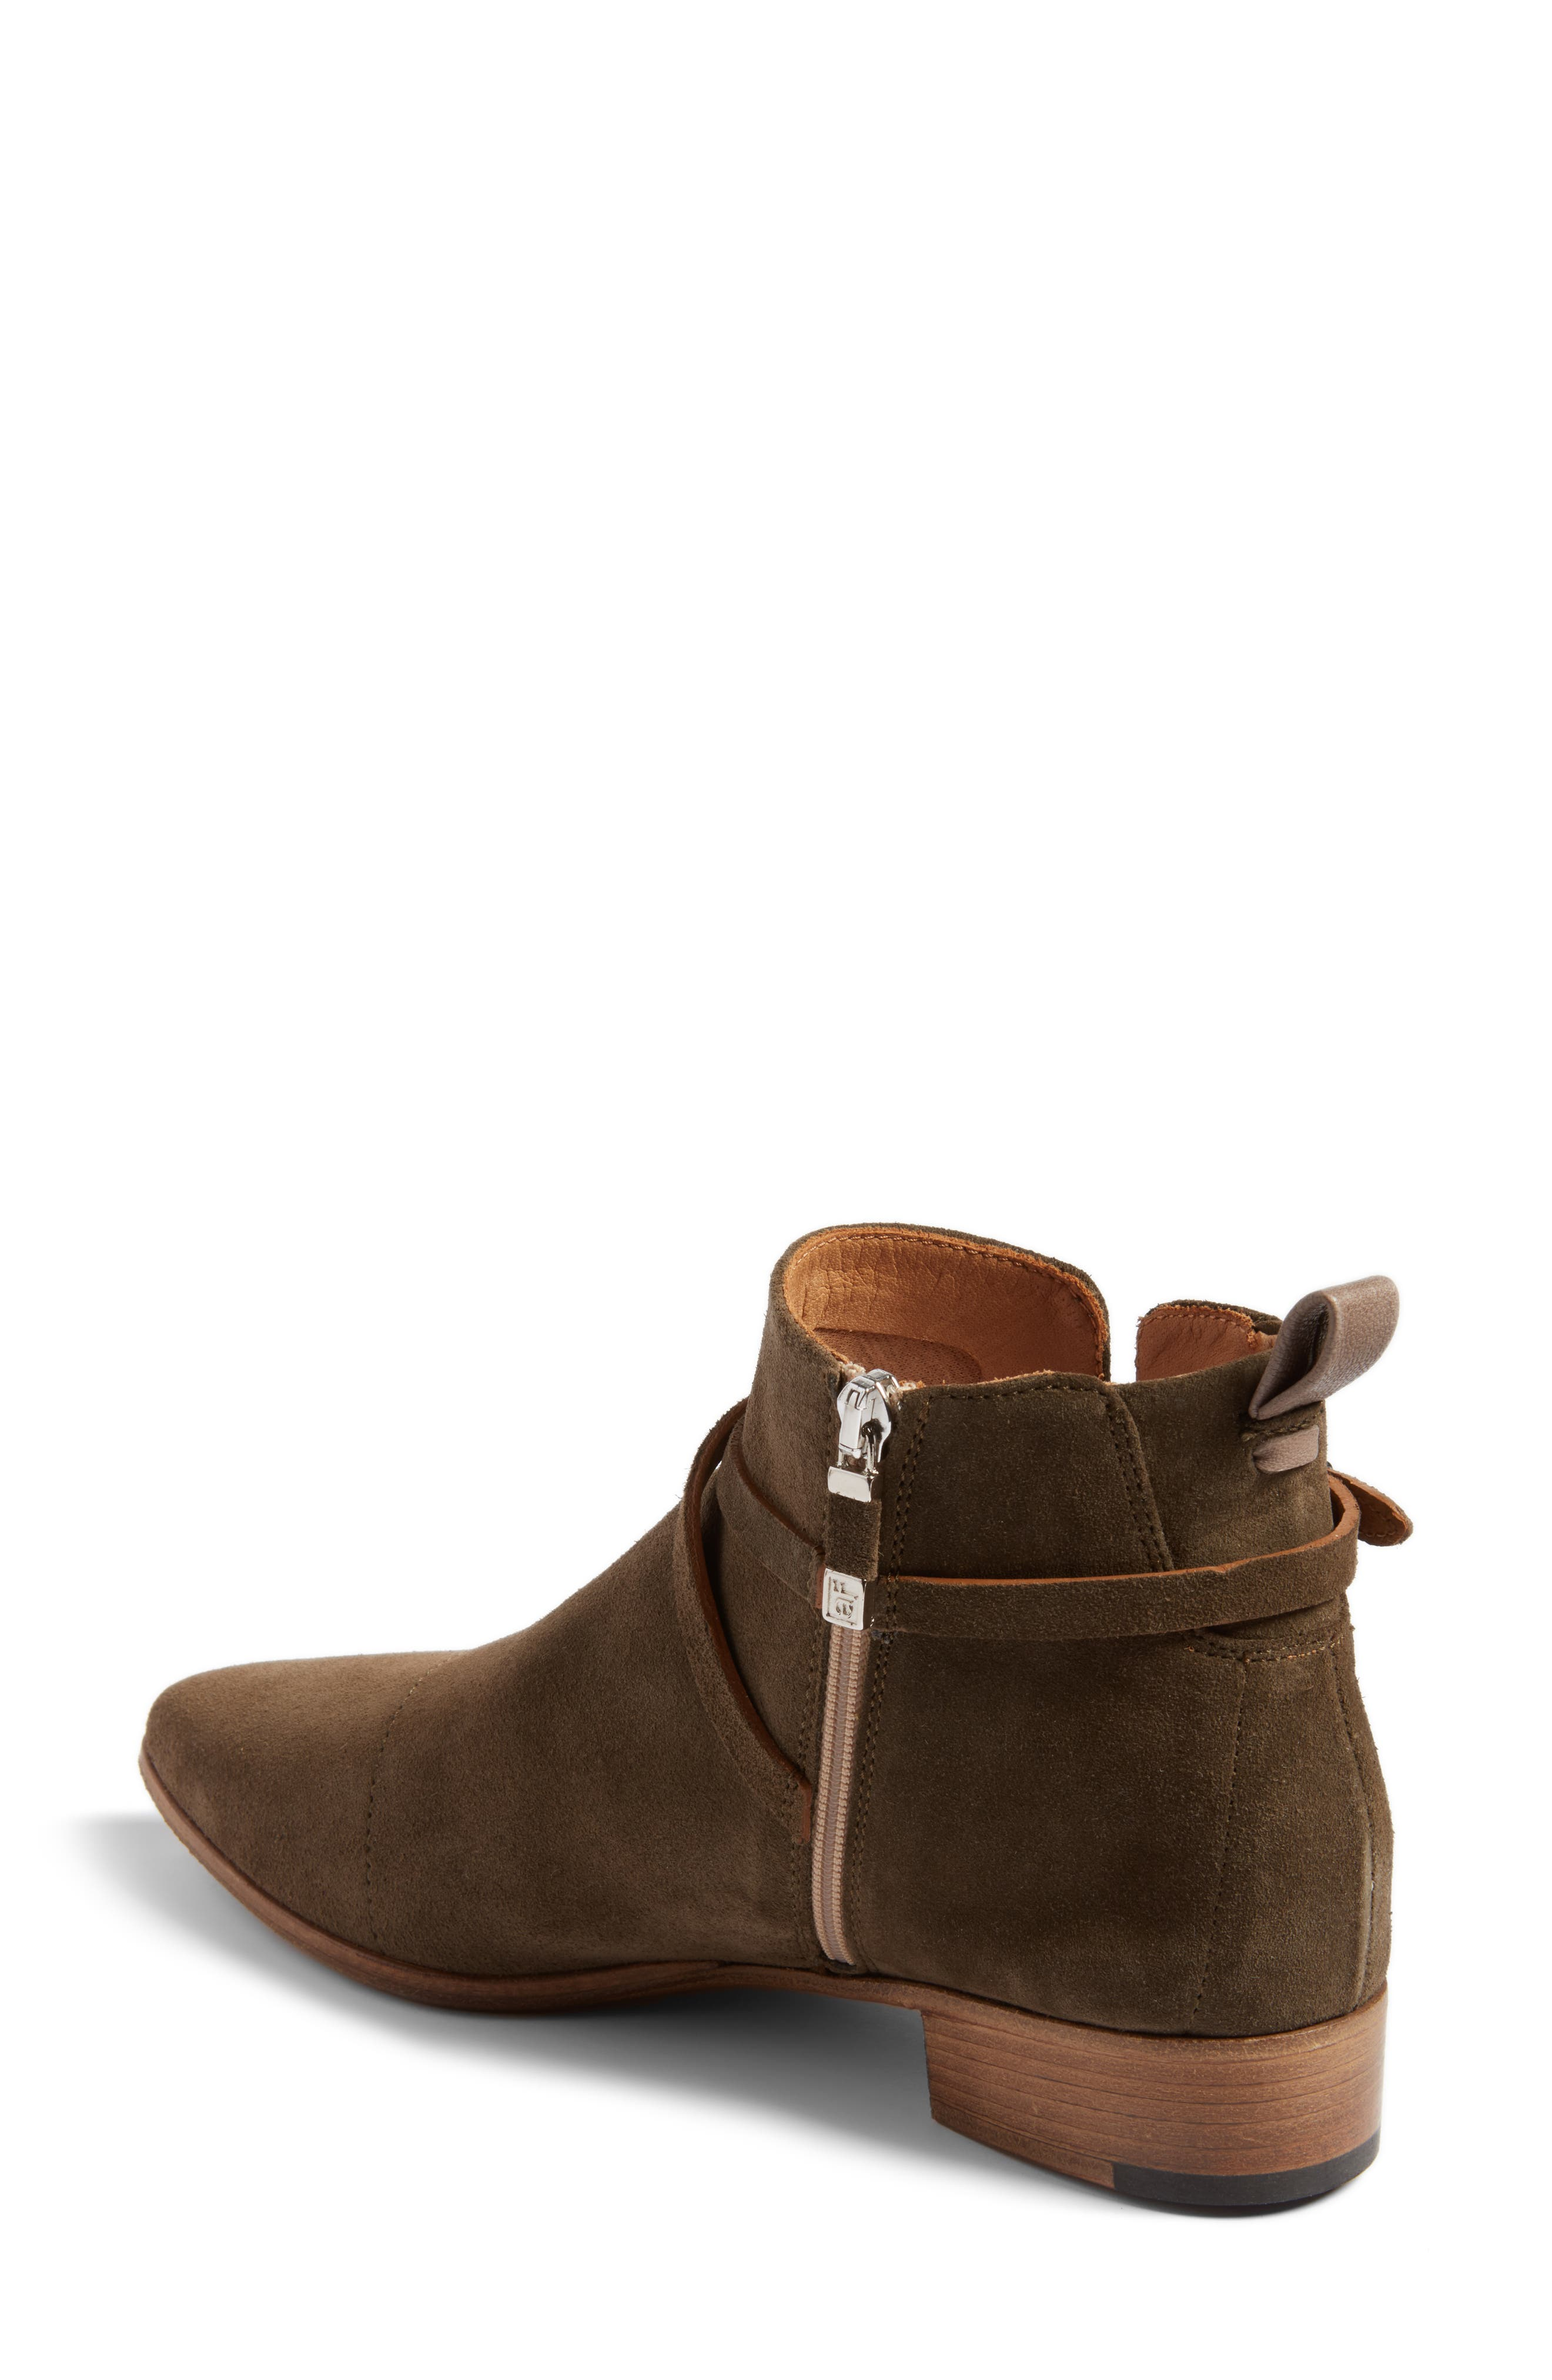 'Mea' Ankle Boot,                             Alternate thumbnail 8, color,